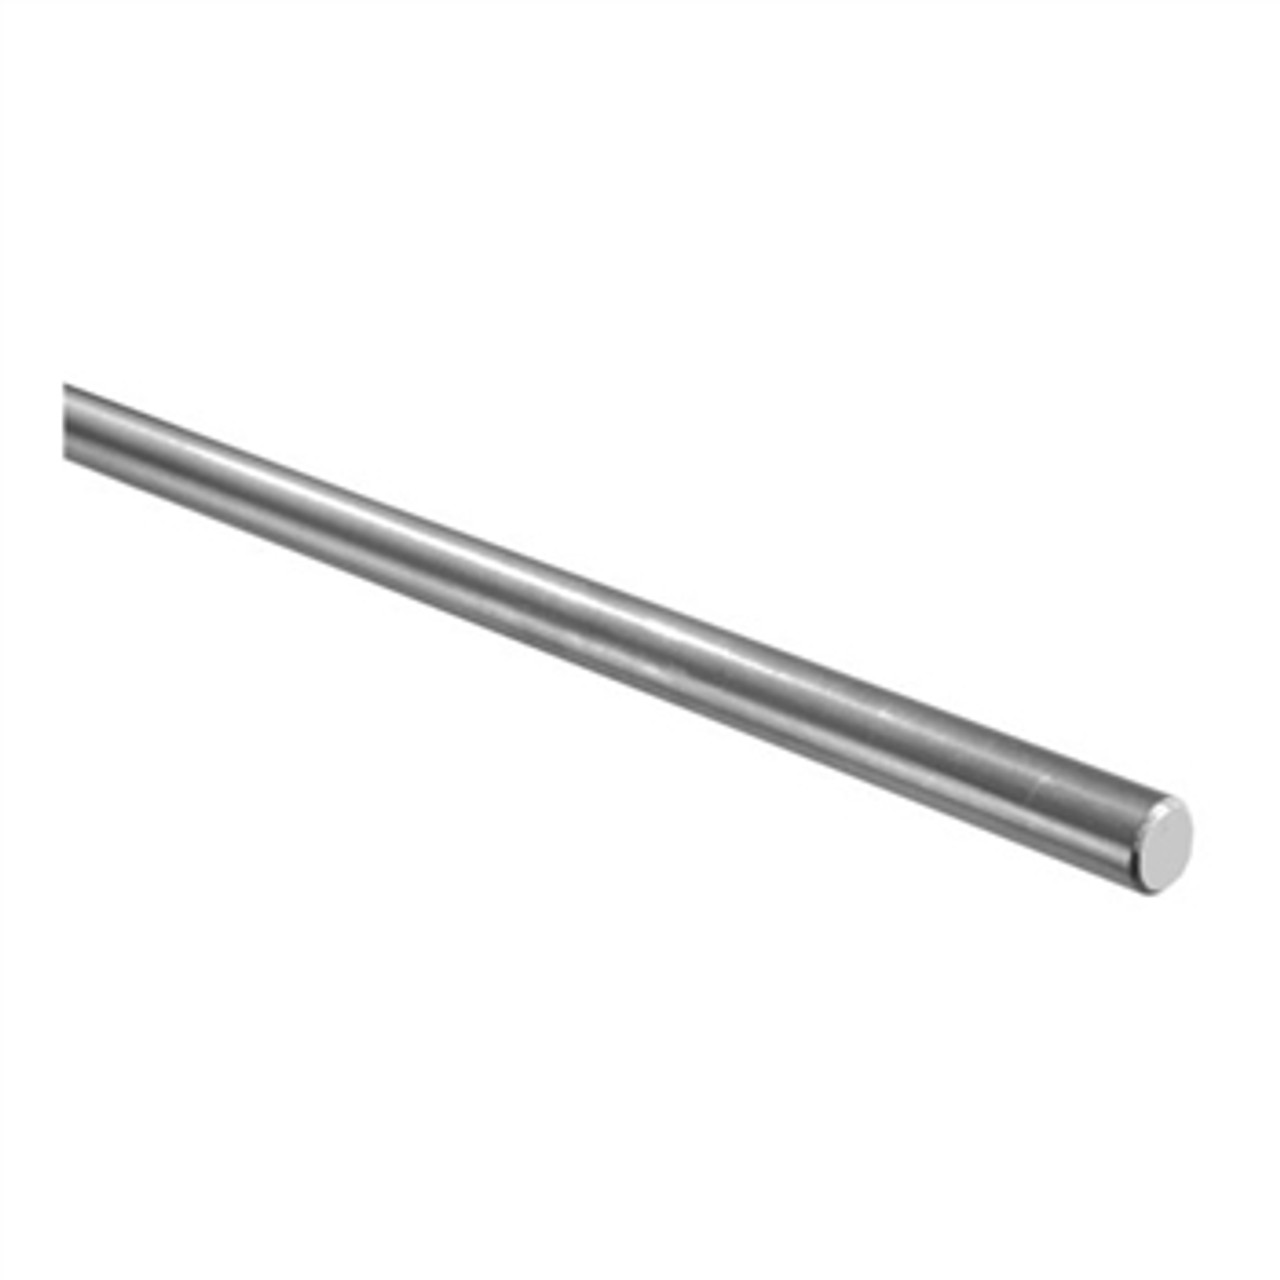 """E0052 5/16"""" Stainless Round Bar, 10'"""